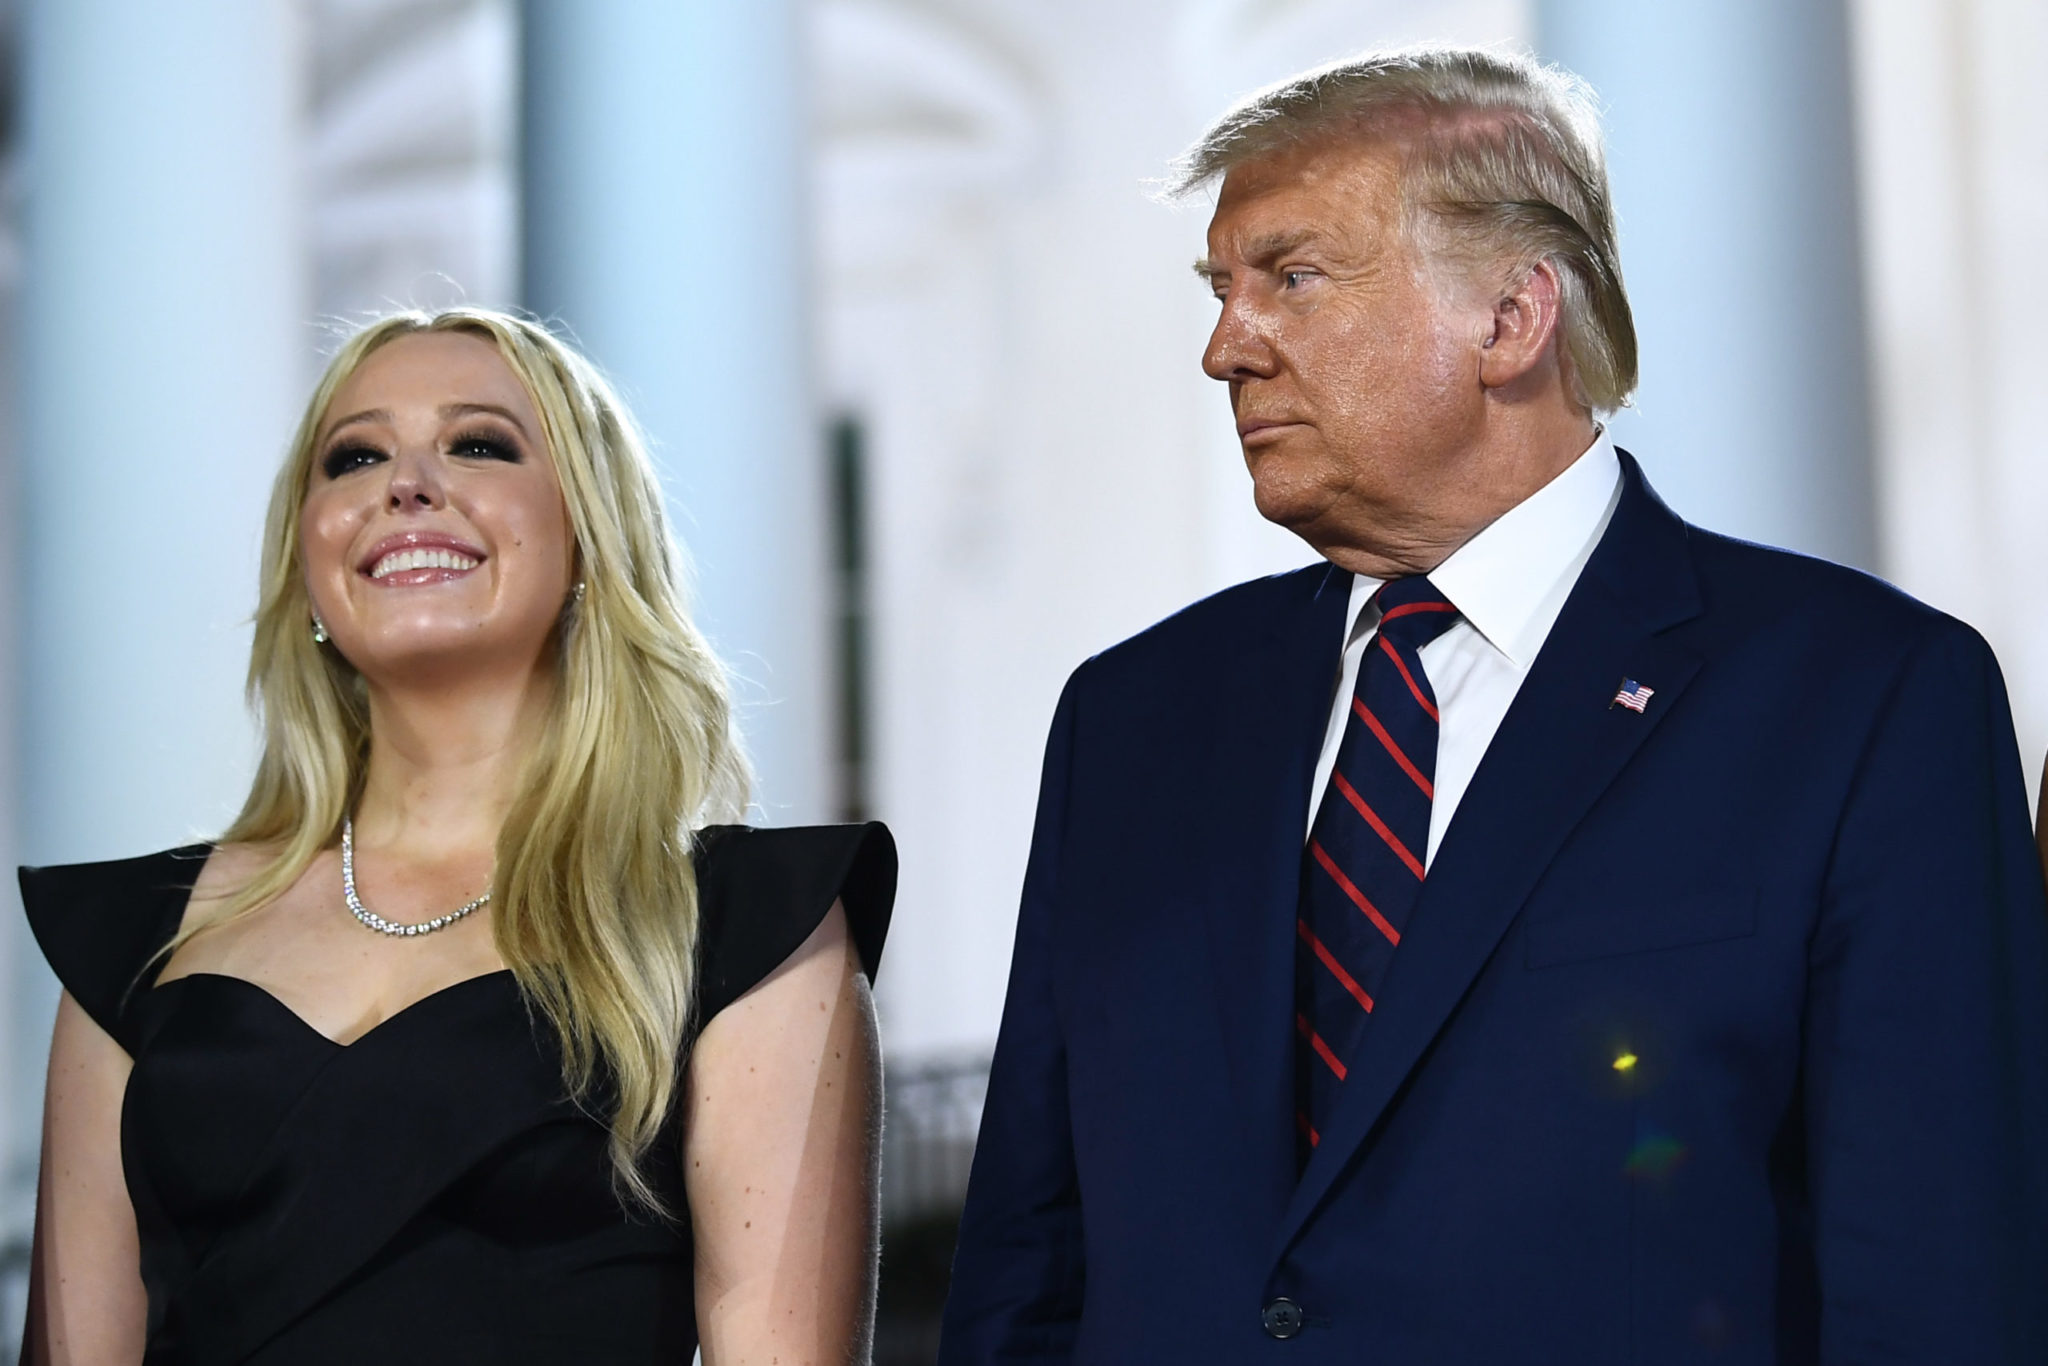 US President Donald Trump stands with daughter Tiffany Trump after he delivered his acceptance speech for the Republican Party nomination for reelection during the final day of the Republican National Convention at the South Lawn of the White House in Washington, DC on August 27, 2020.